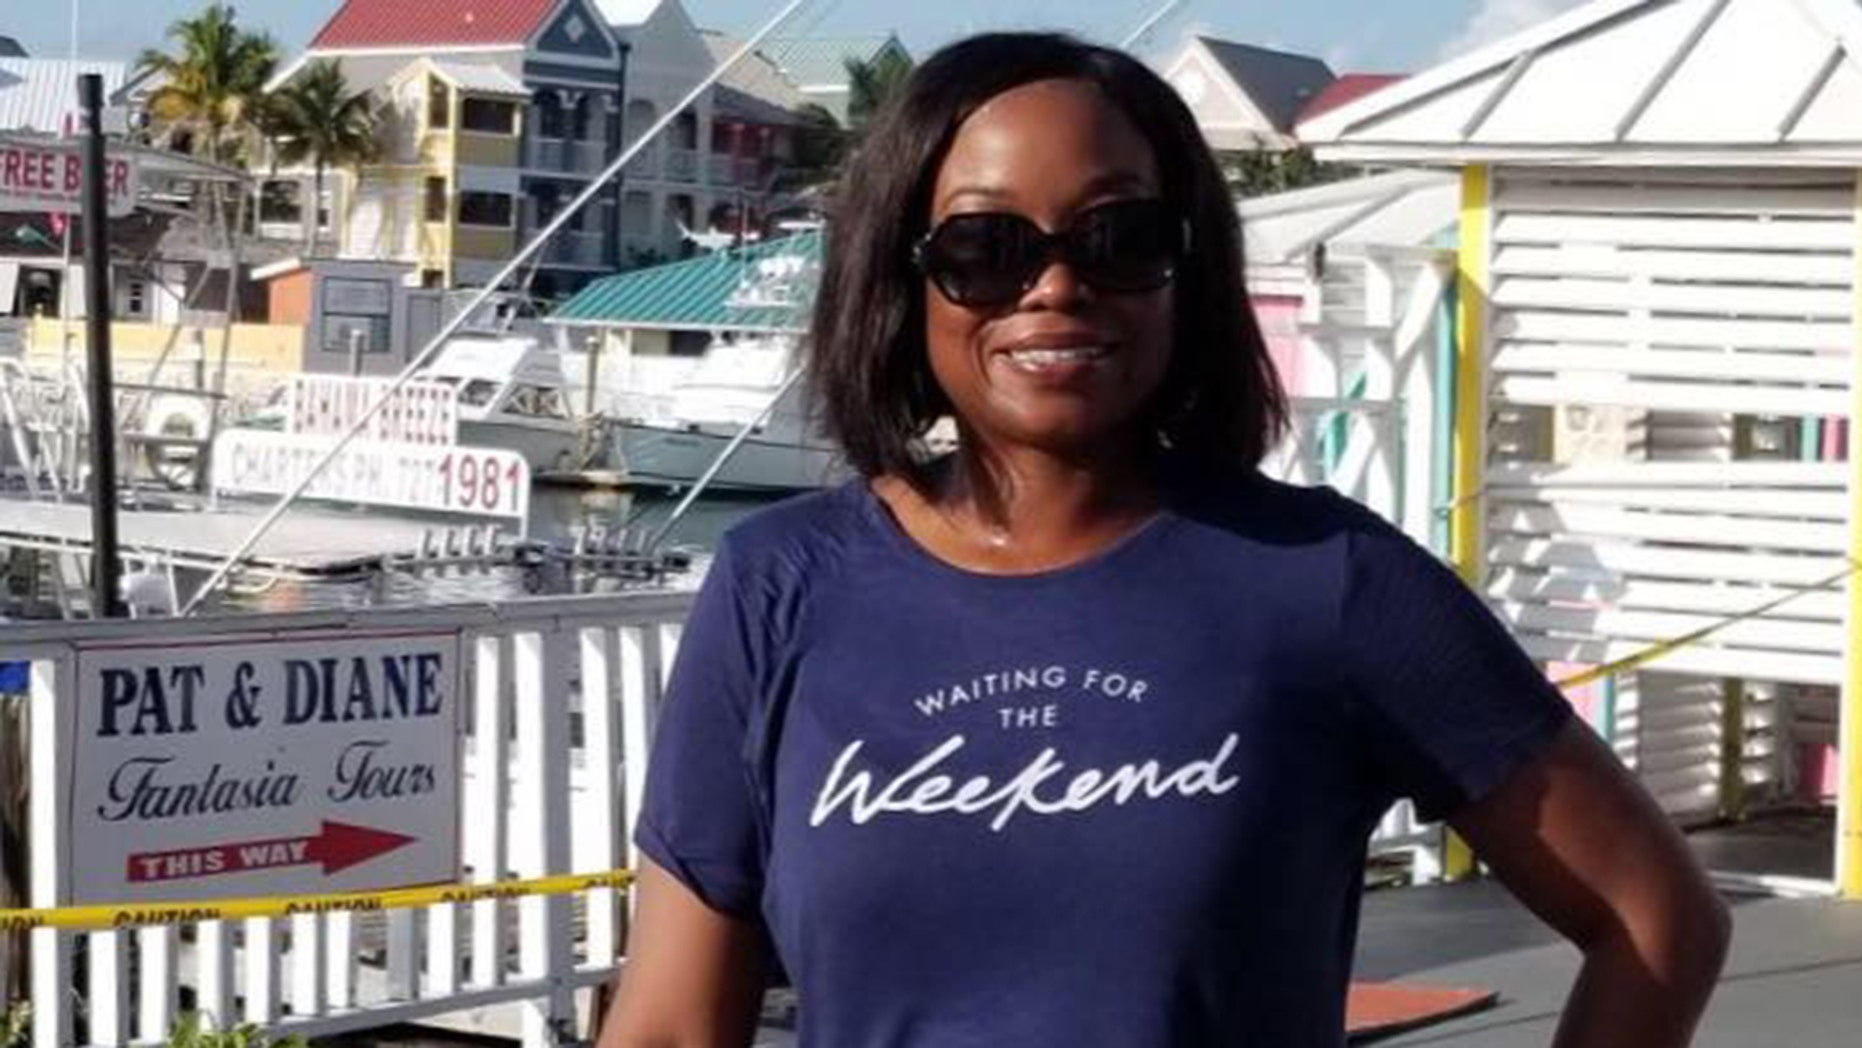 Family members identified Andrea Washington as the woman found dead in her Florida home on Monday.